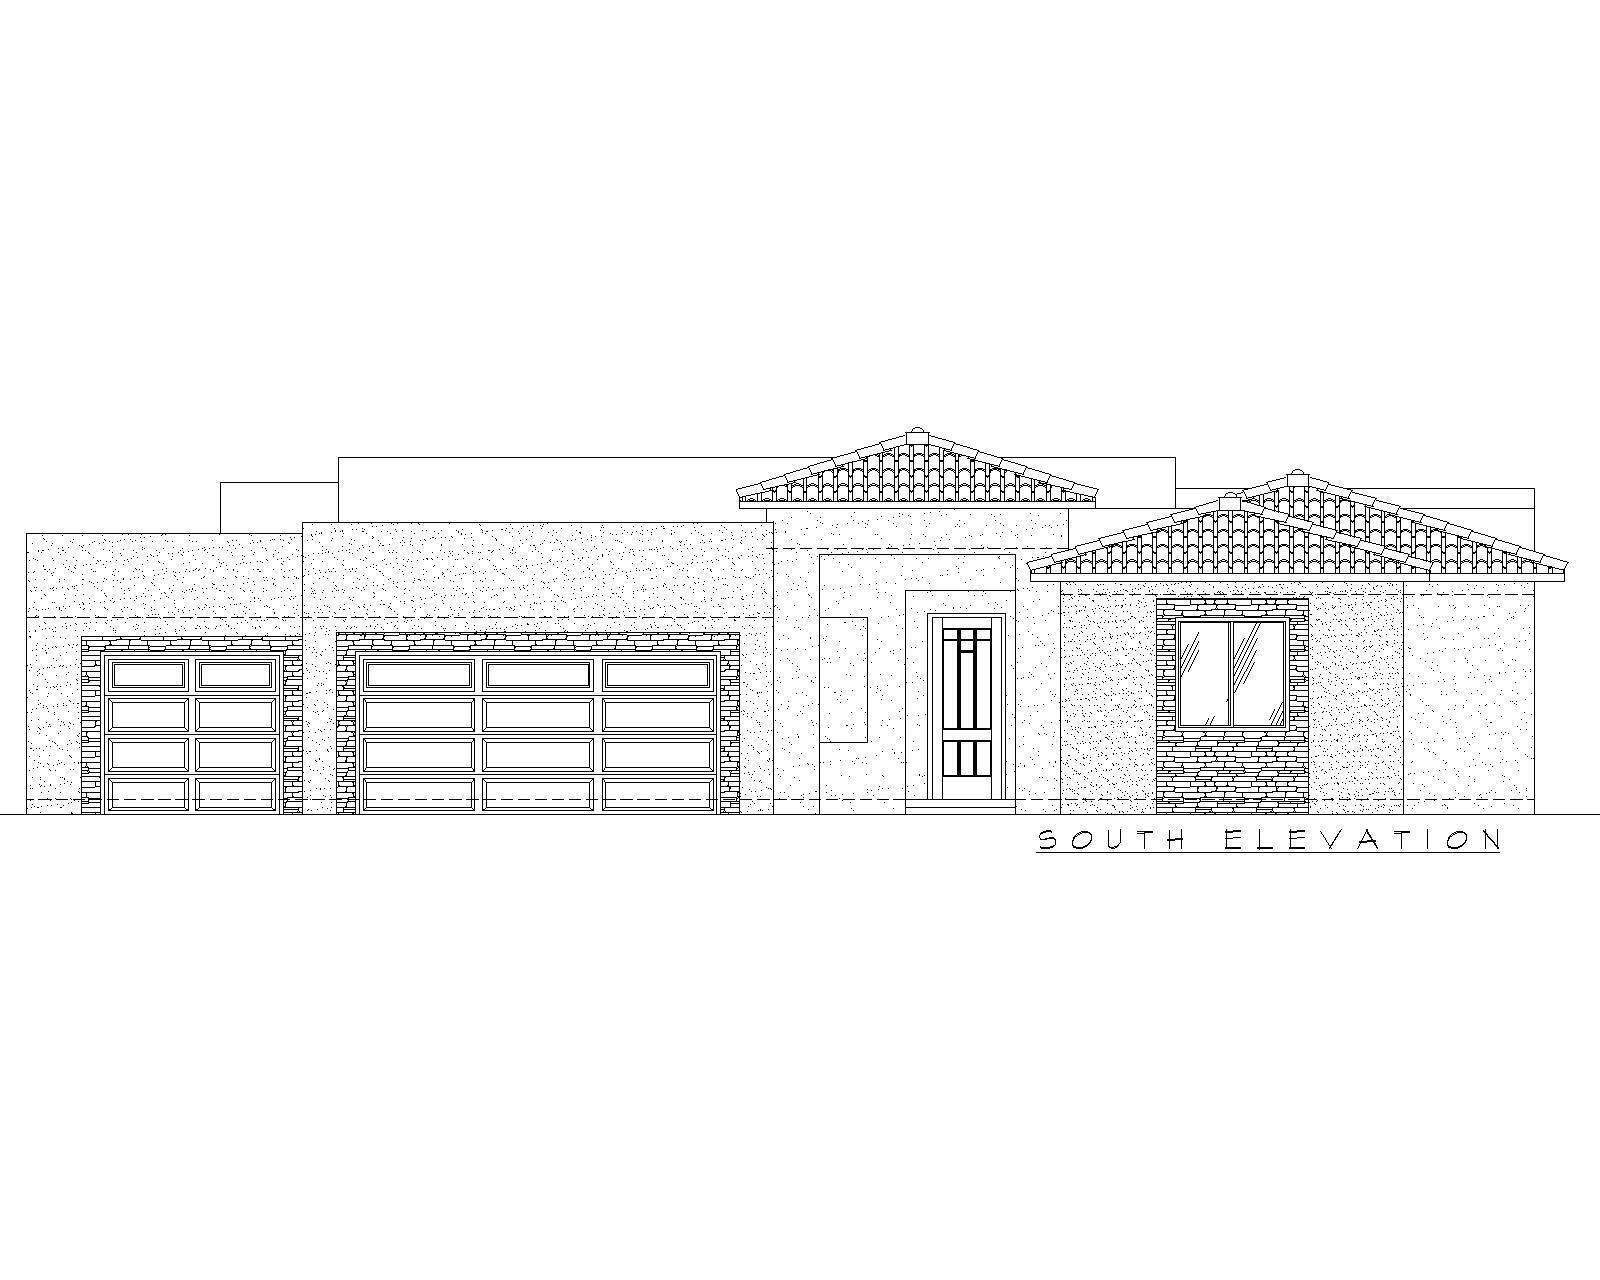 This new Custom Scott Patrick Home is located in a small 8 unit gated community.  Home is slated to be completed in late 2021.  Some of the features of the home include ceiling treatments and stand alone tub in the Master suite, skylights throughout, front and rear covered porches, oversized kitchen pantry, kitchen island, the dining, kitchen and great room are located at the rear of the home and open up to a covered patio,  and bedroom number 2 is located away from the other bedrooms making it a great guest room or mother-in-law suite.